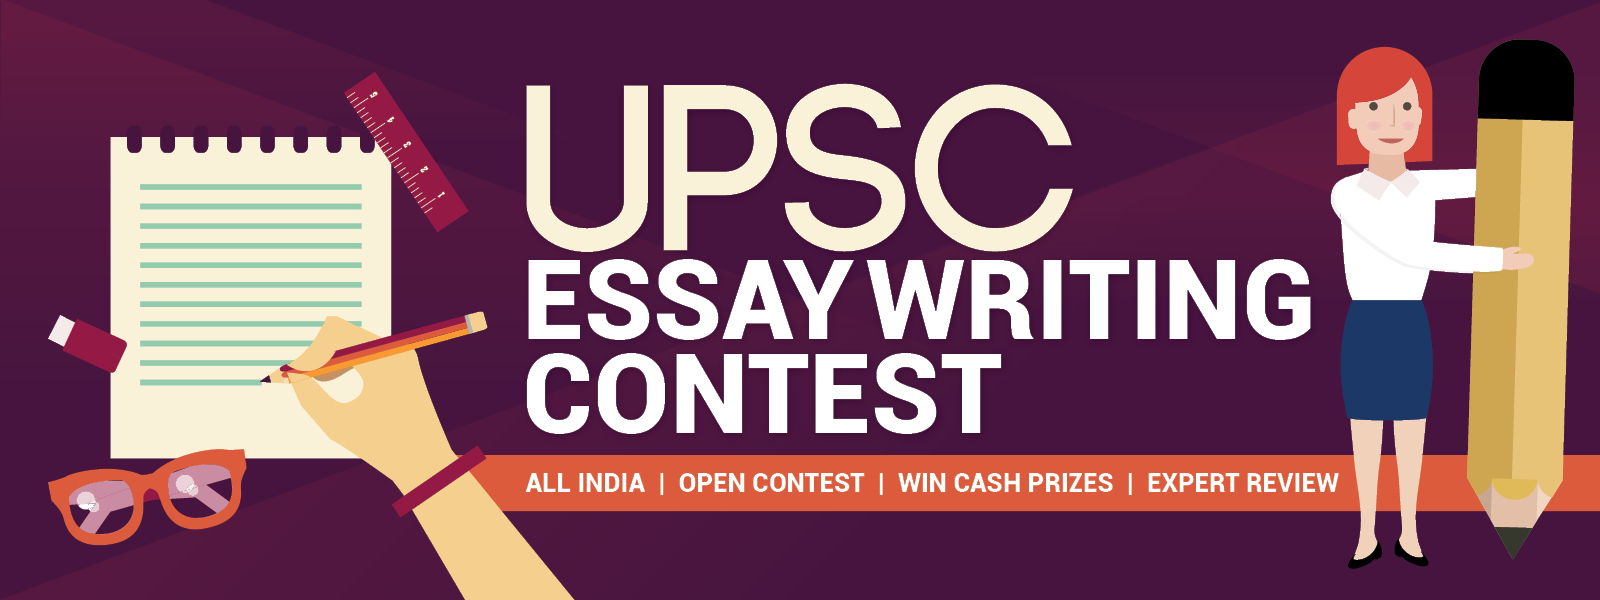 online essay competitions Academic writing jobs online essay writing competitions in india graphic organizers for persuasive essays research paper writer jobs online essay writing competitions in india 2017.